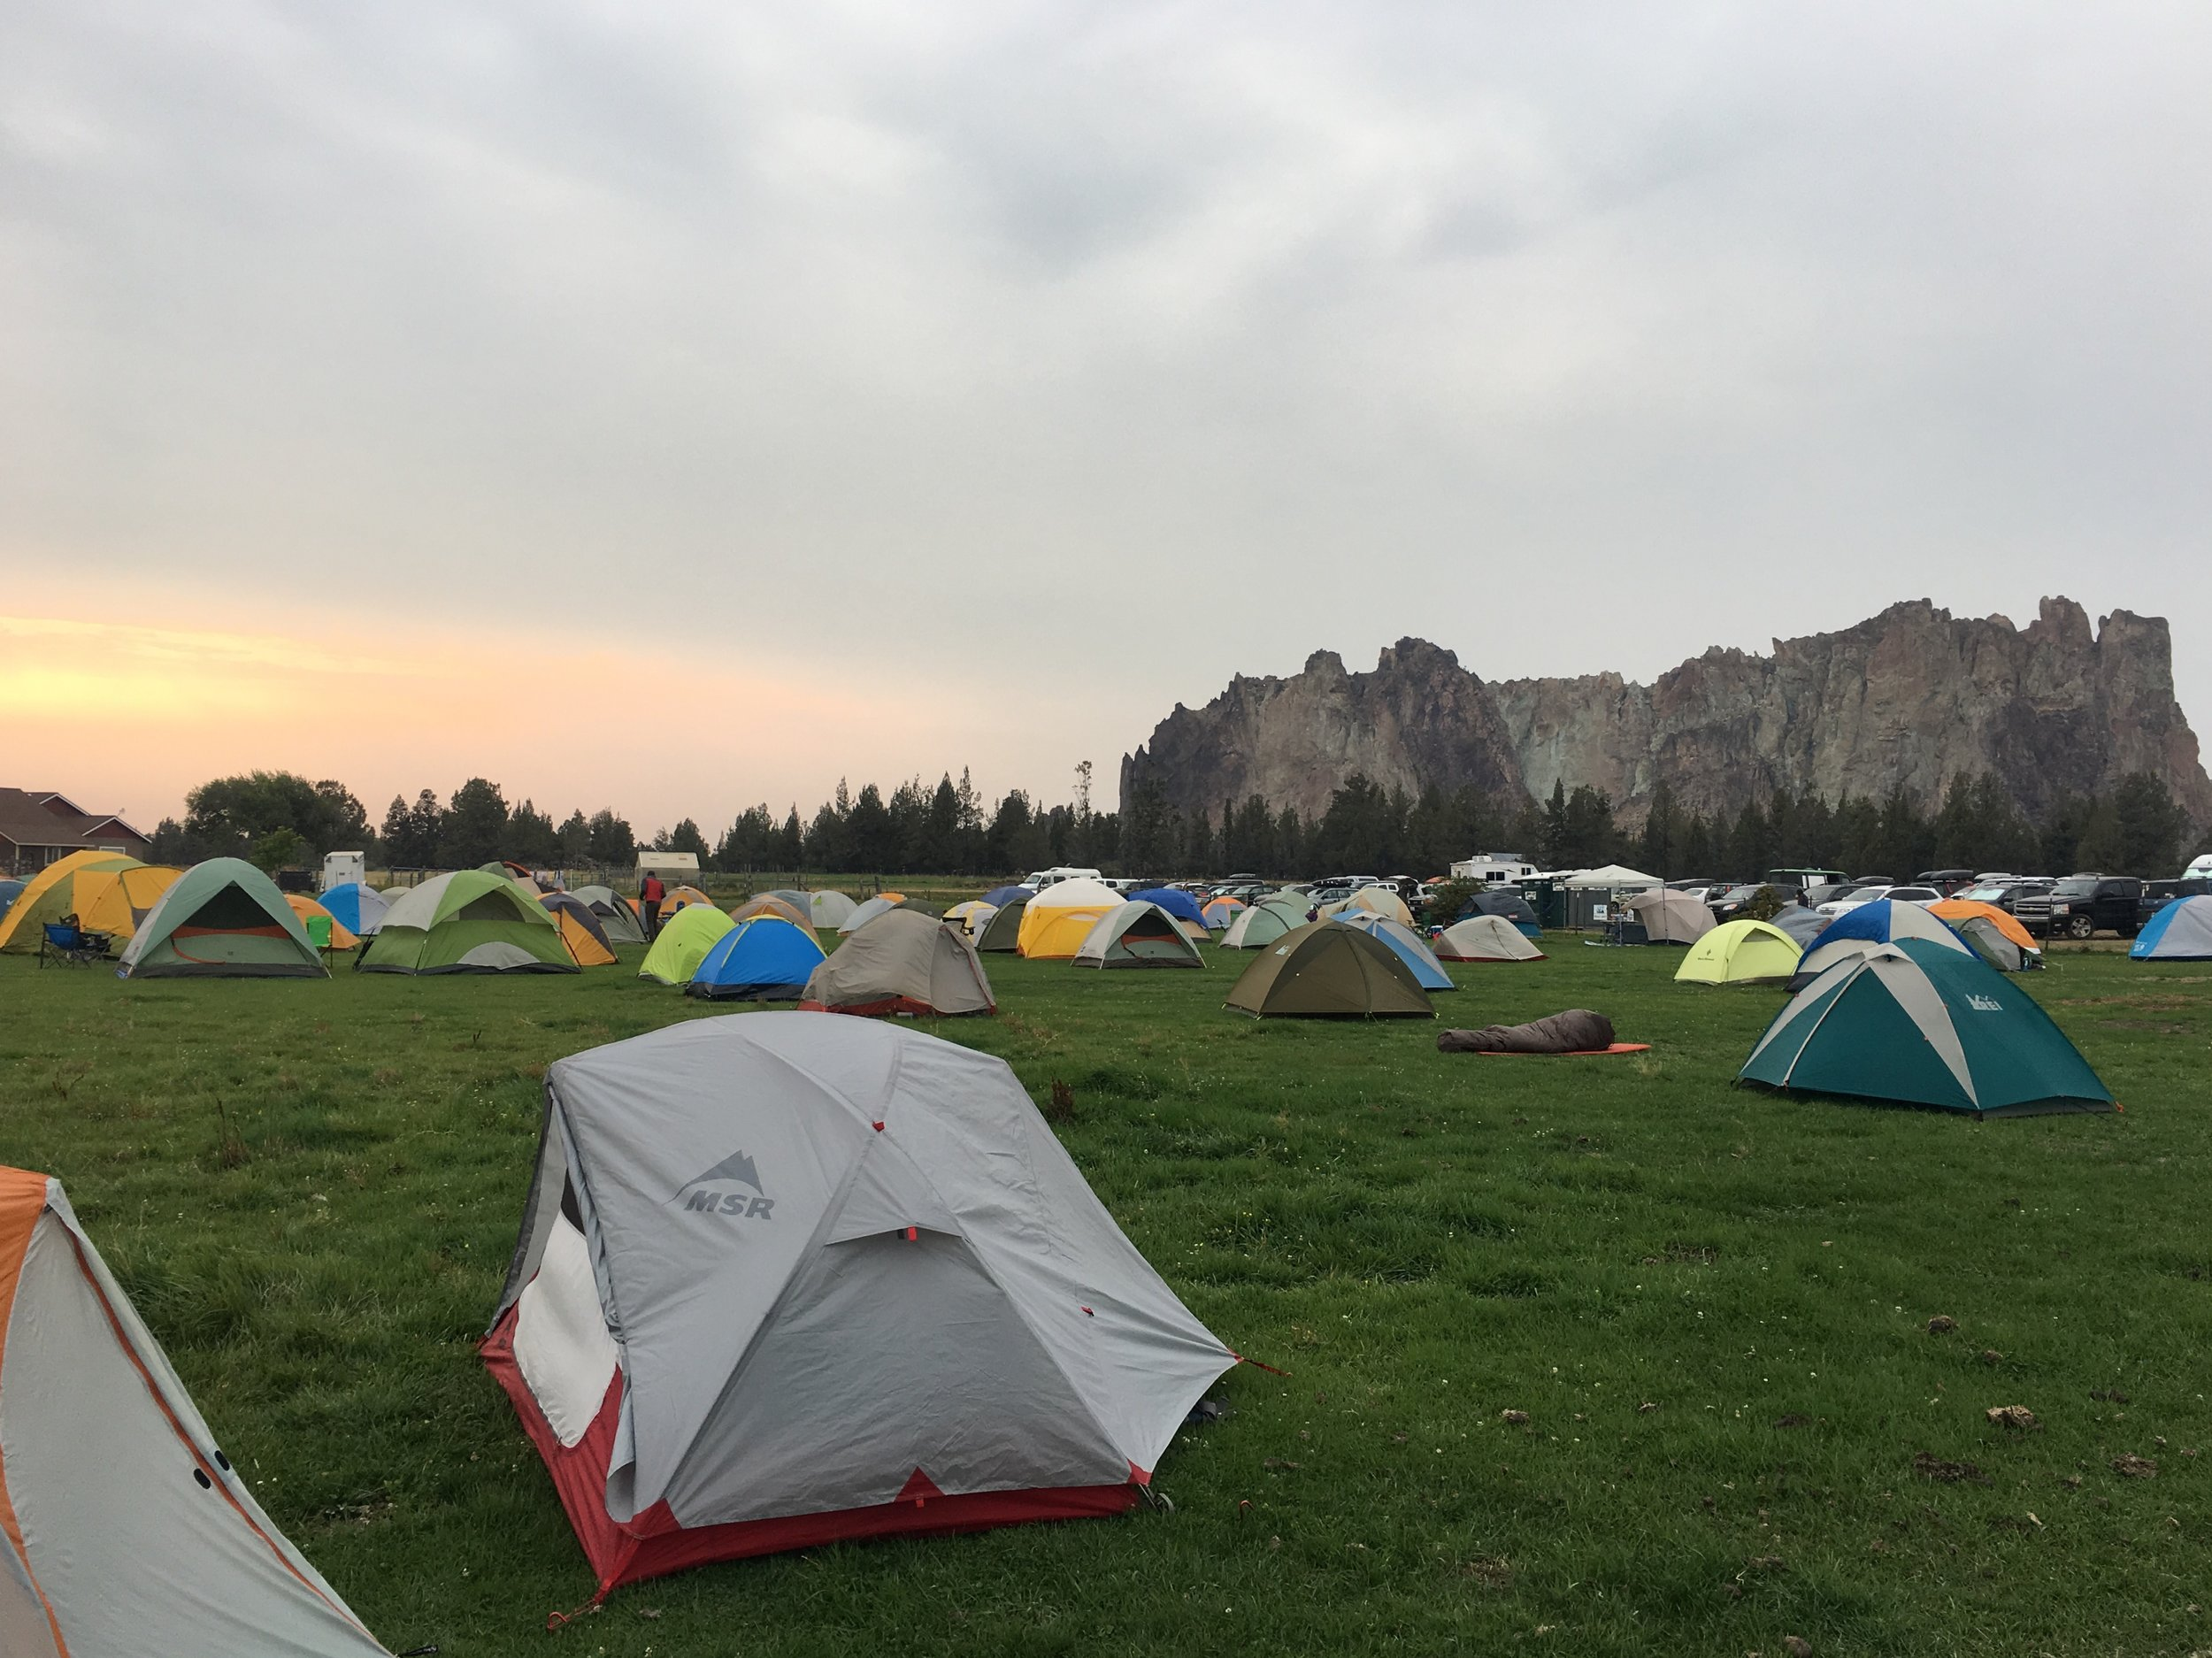 Camp sites at the 2018 Smith Rock Craggin' Classic